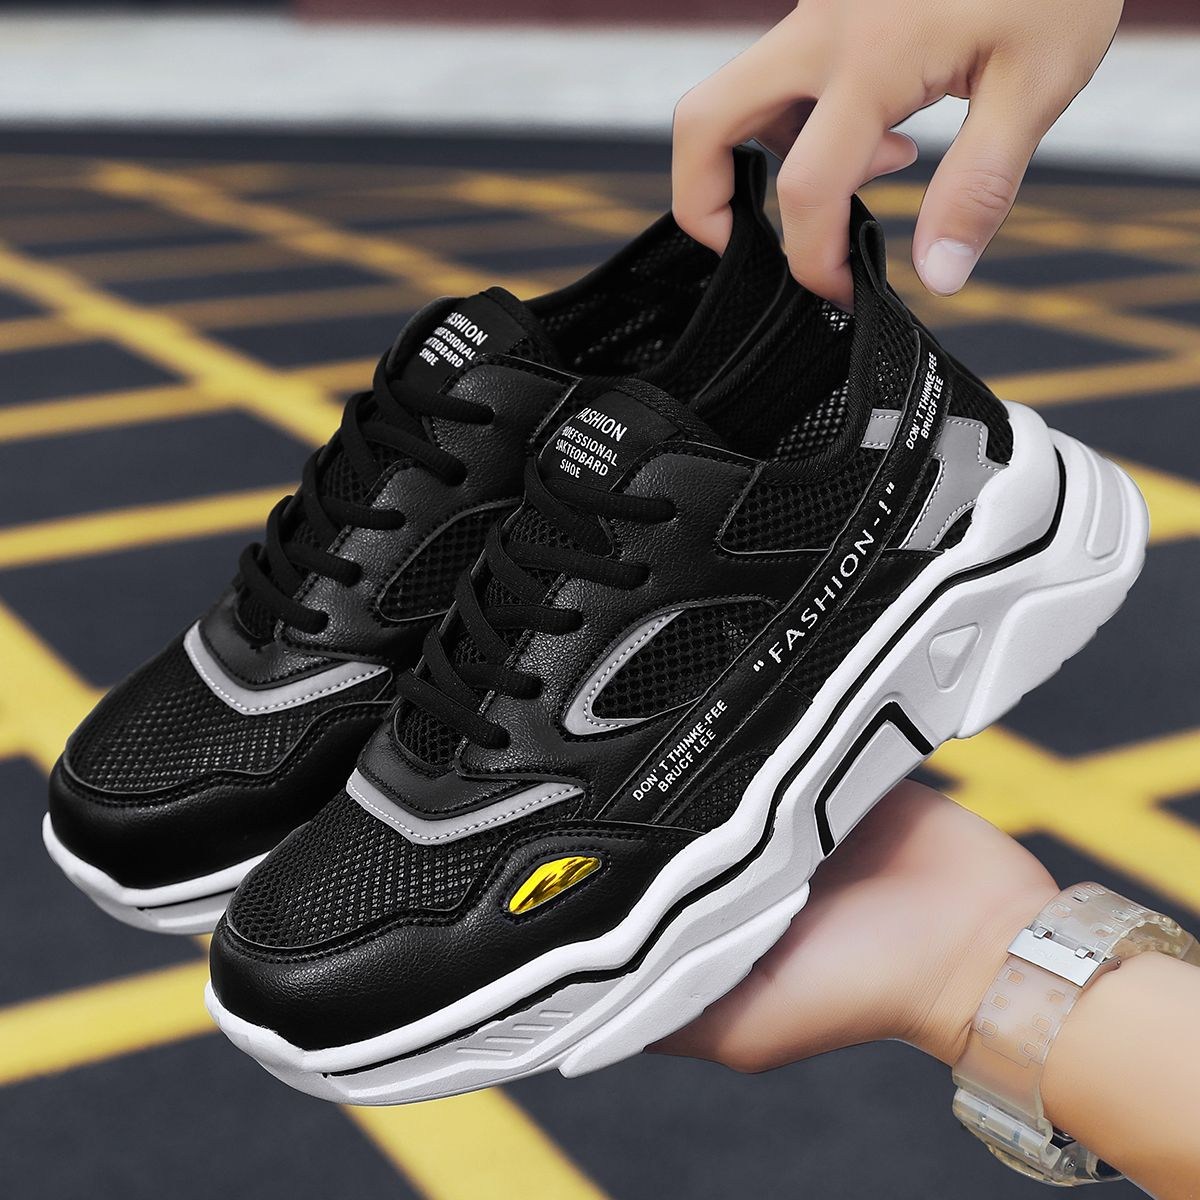 2020 Summer Sneakers Platform Shoes For